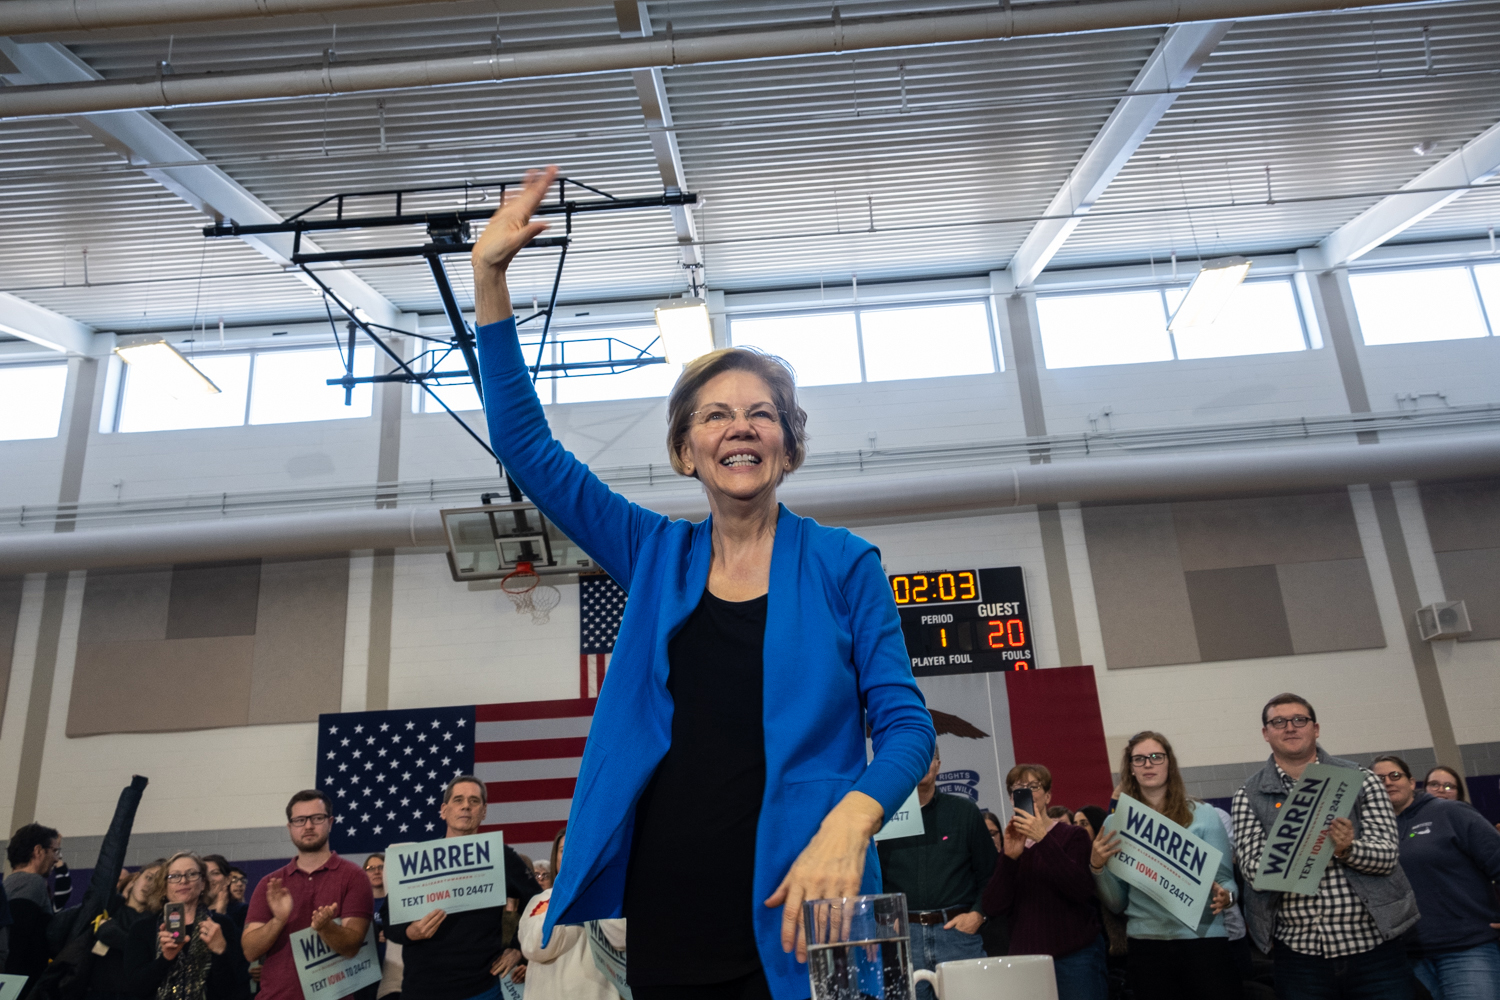 Senator Elizabeth Warren, D-Mass. waves to the audience following a town hall event at North Central Junior High School in North Liberty on Saturday, December 21, 2019. (Wyatt Dlouhy/The Daily Iowan)